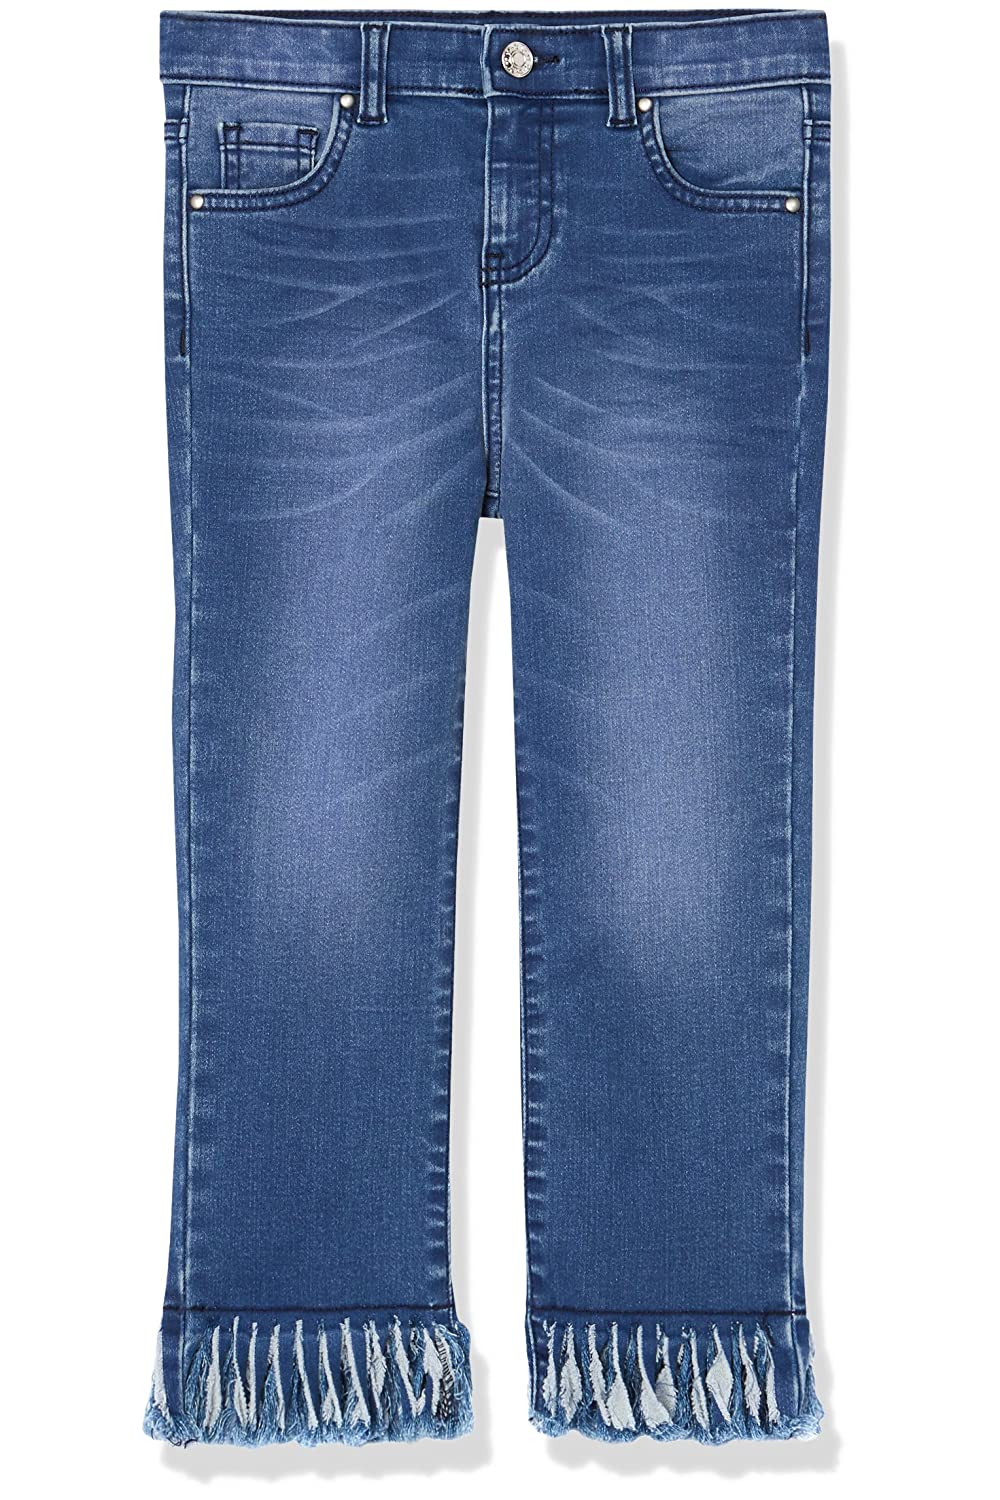 RED WAGON Girls Jeans with Frayed Hem